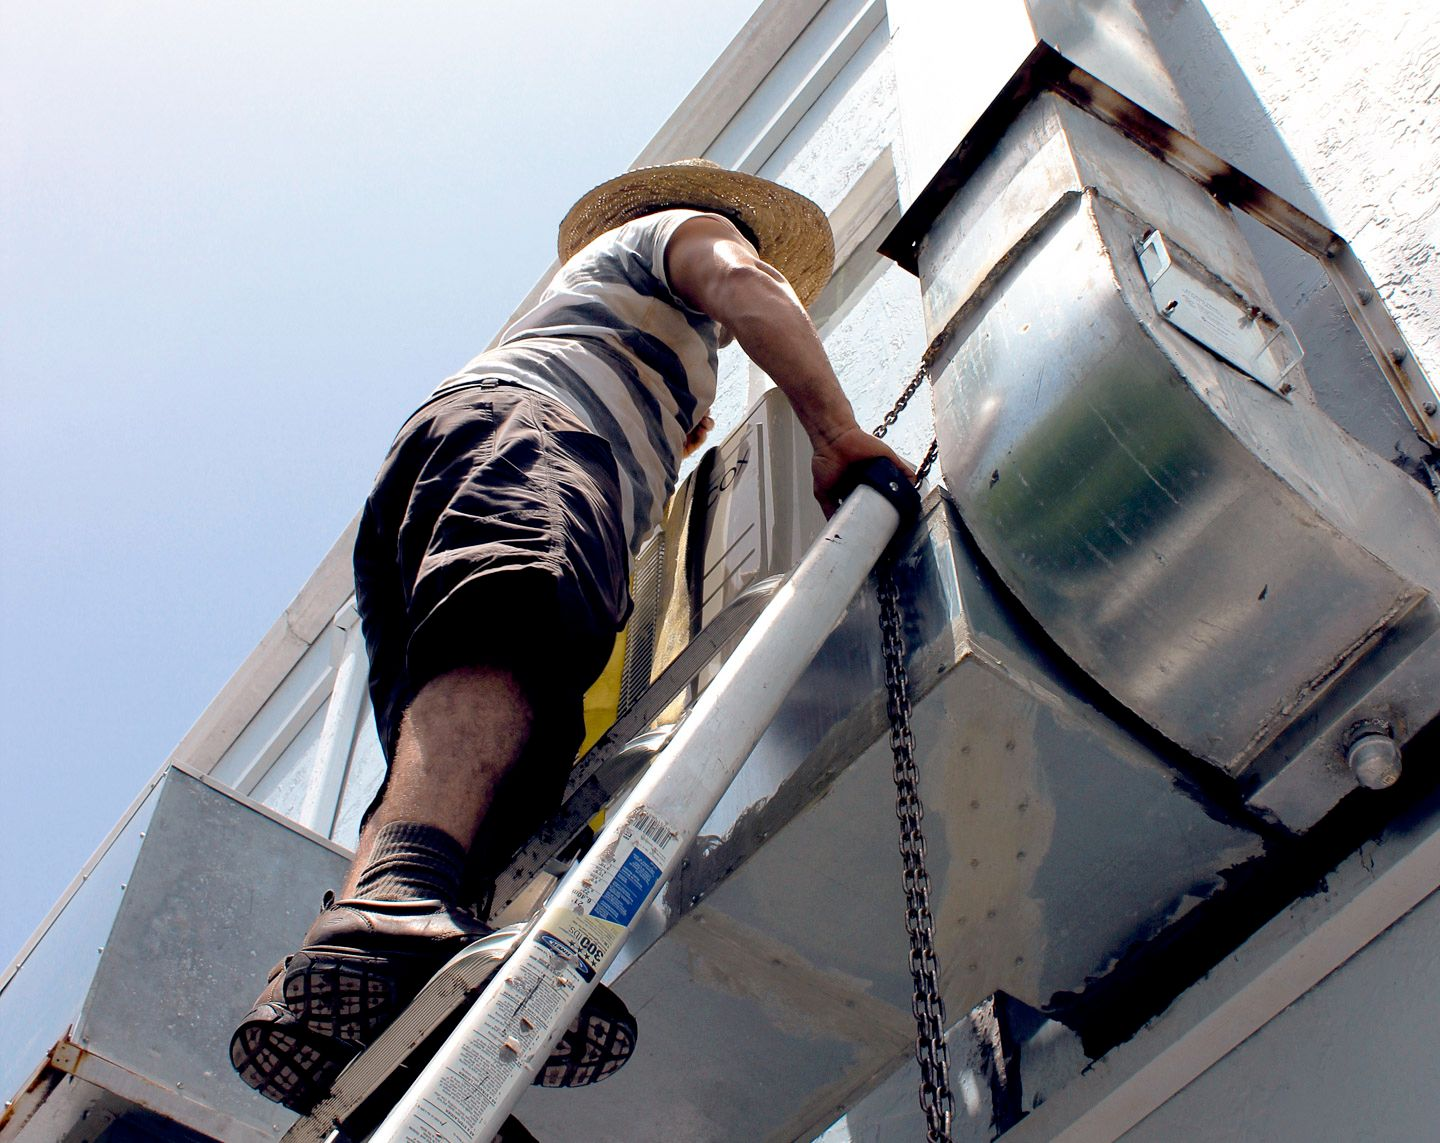 man on ladders fixing HVAC or AC system